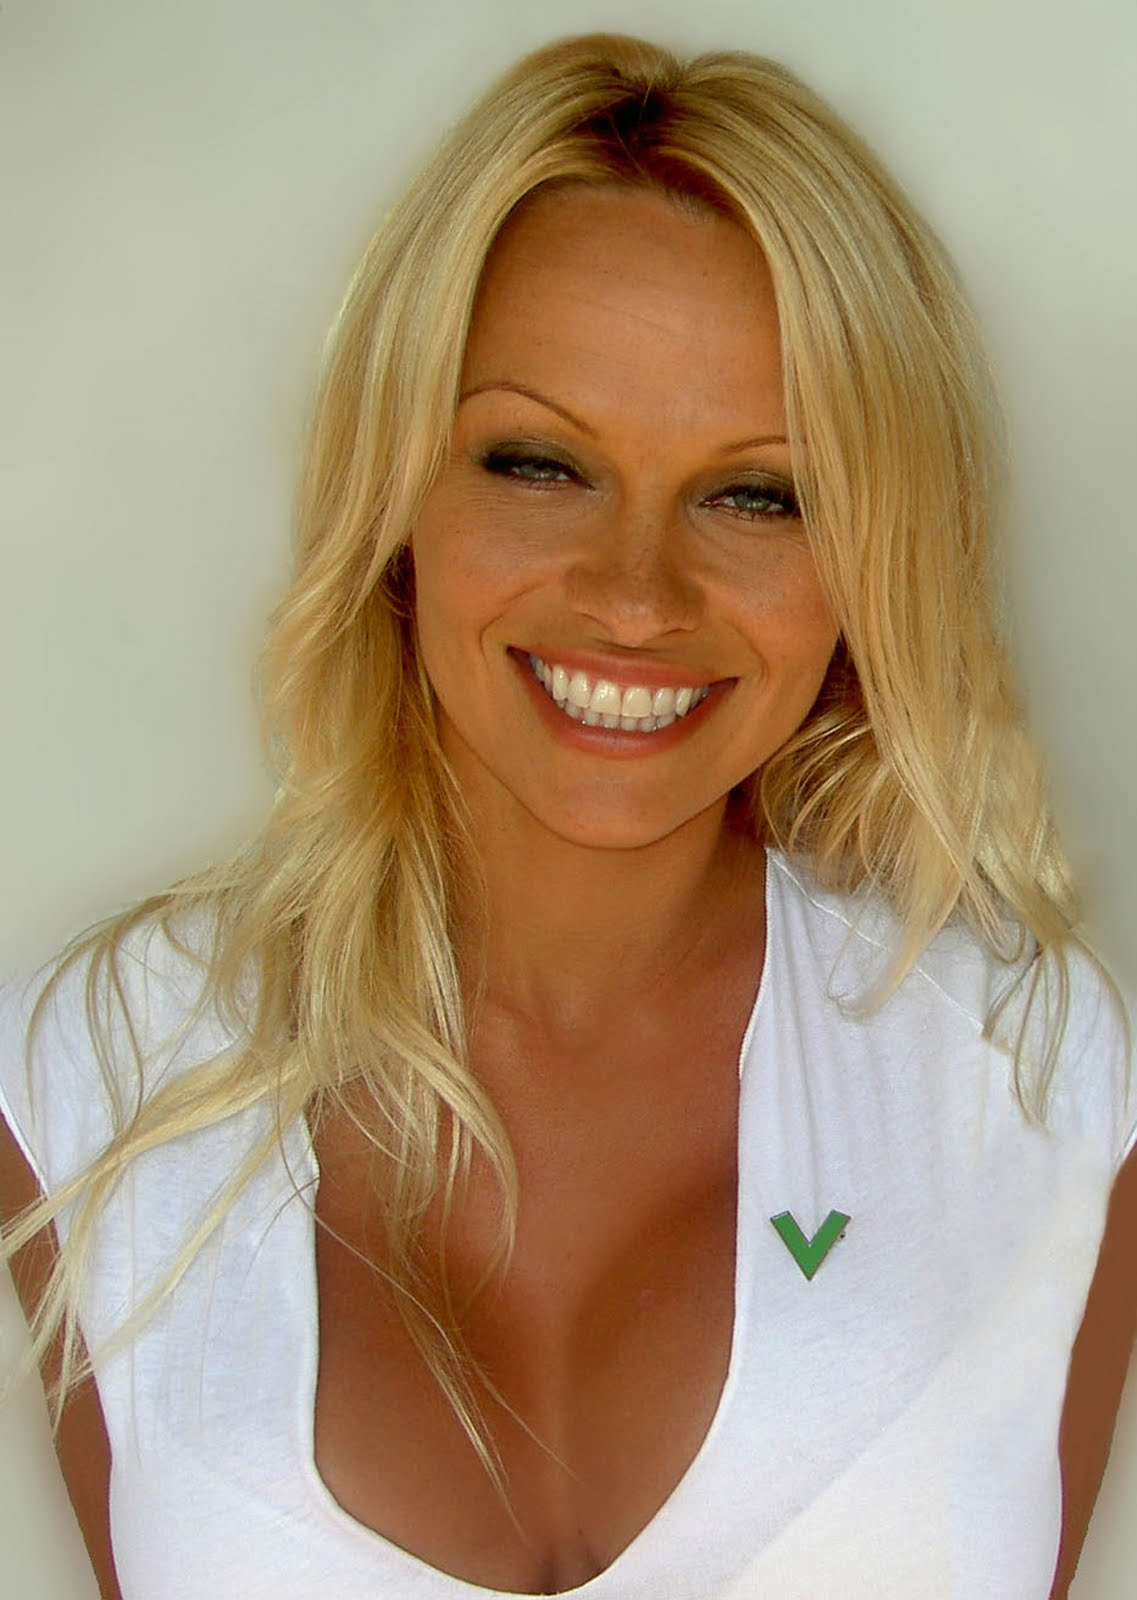 Hot. Pamela anderson porno the word